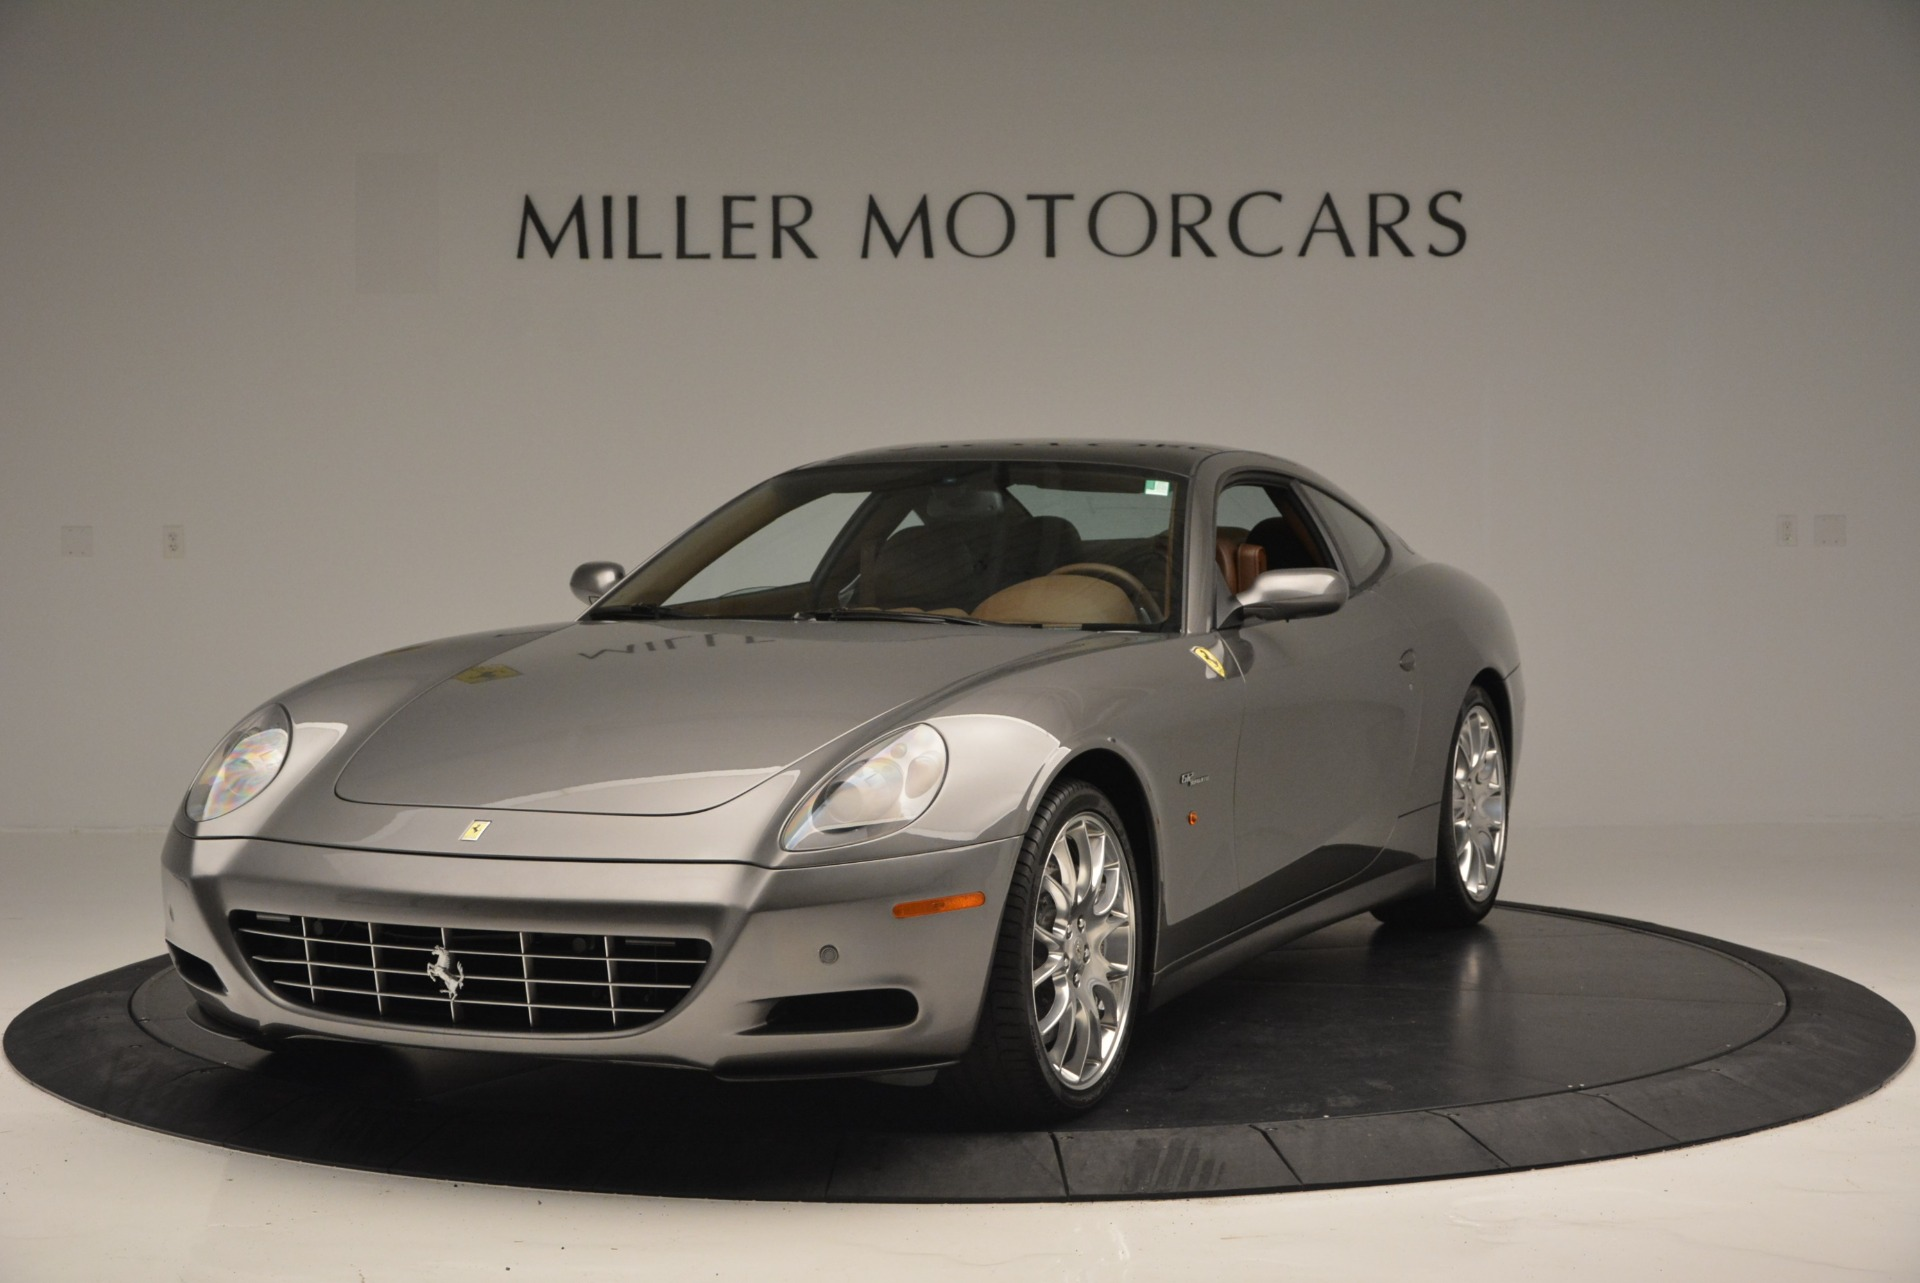 Used 2009 Ferrari 612 Scaglietti OTO for sale Sold at Bugatti of Greenwich in Greenwich CT 06830 1